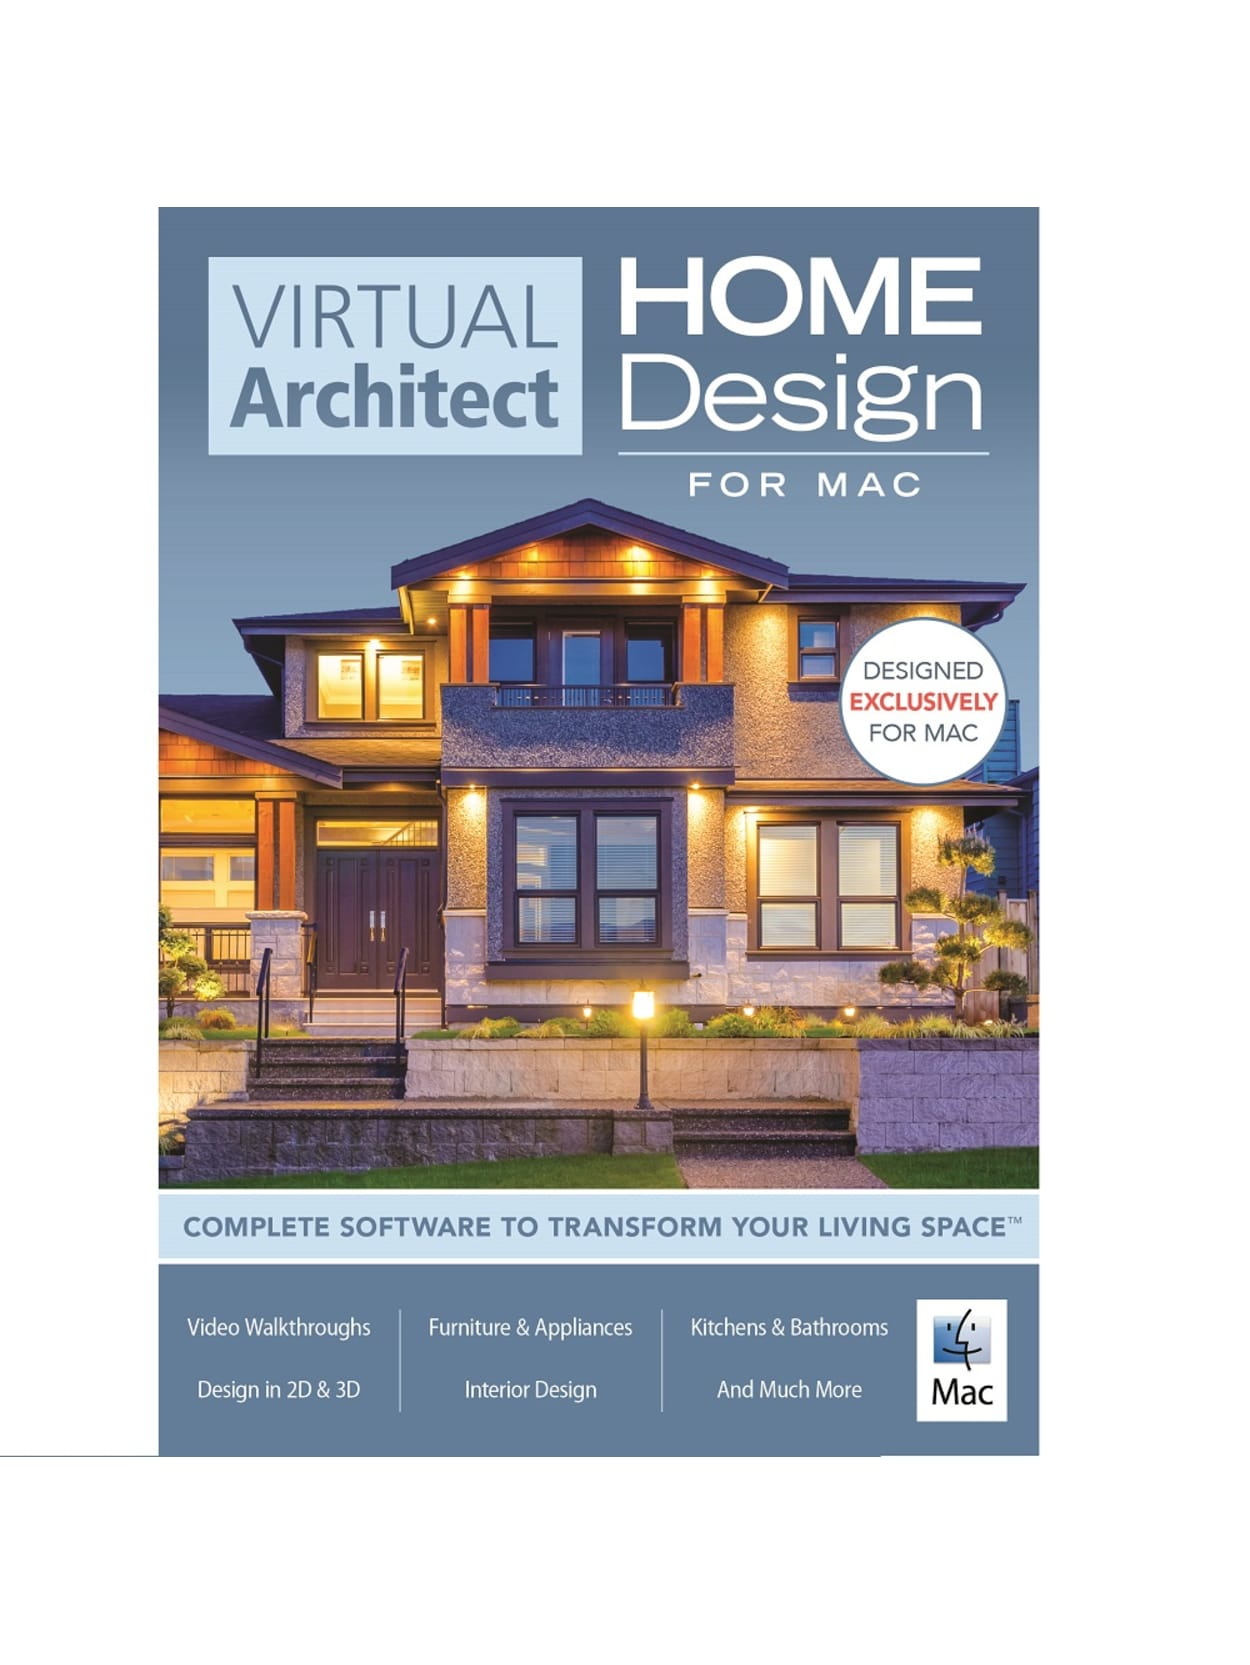 Virtual Architect Home Design Software For Mac Office Depot